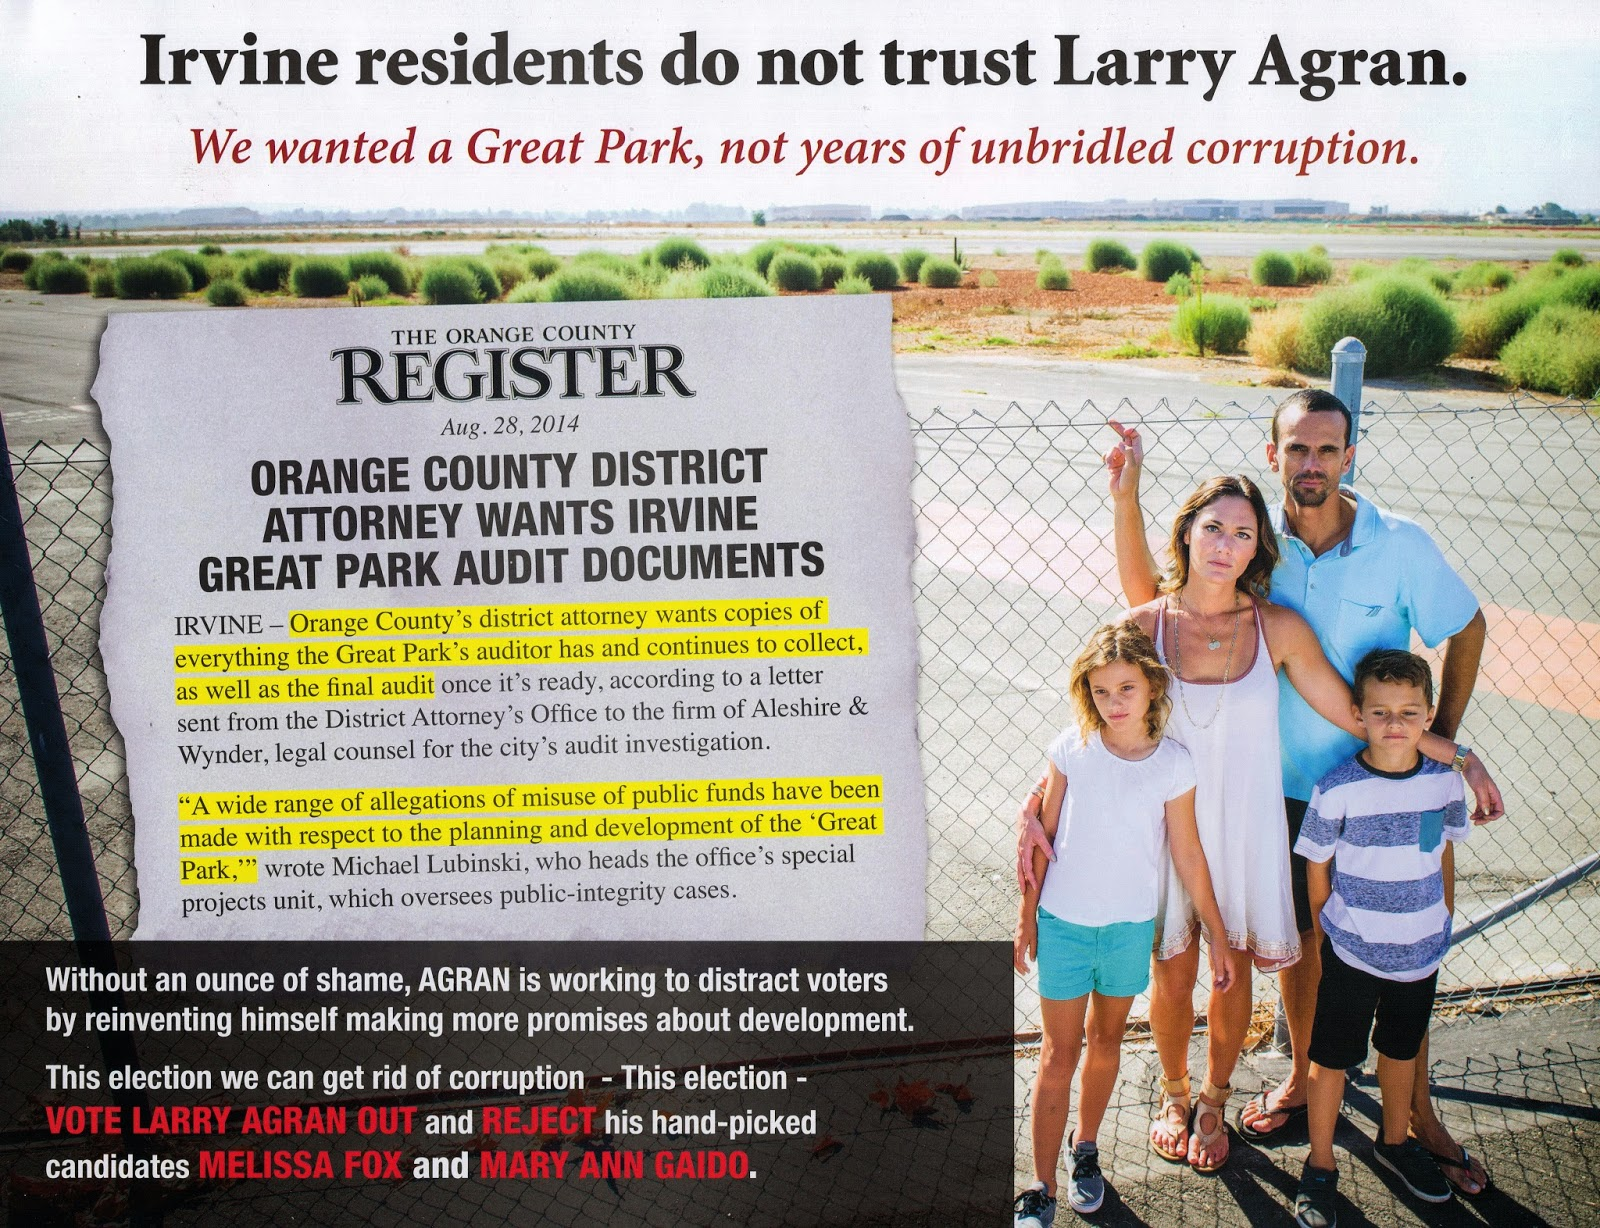 Steve greenberg irvine audit -  Irvine Community News And Views Three Pieces From The Anti Agran Ie And Two New Pieces Today One From Each Side I Have Scanned A Copy Of All Of